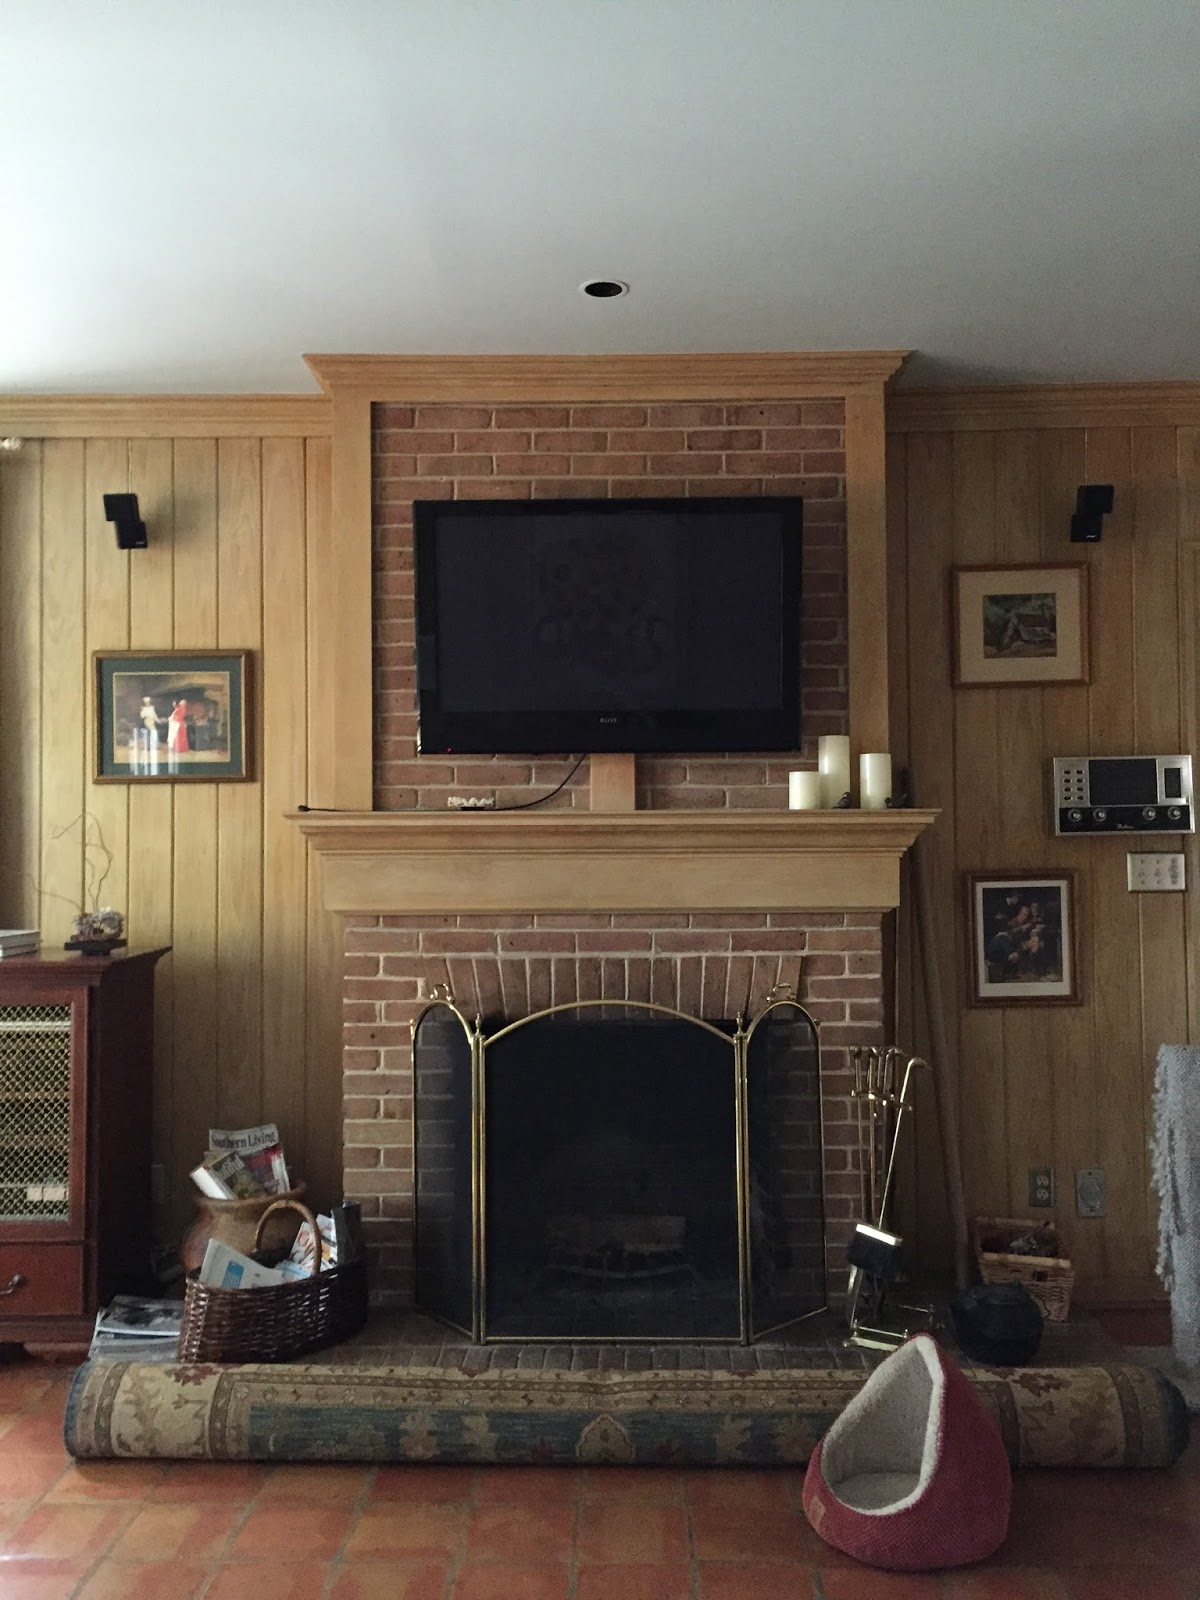 Fireplace Cover Up Top Stoll Fireplace Doors Stoll Zero Clearance